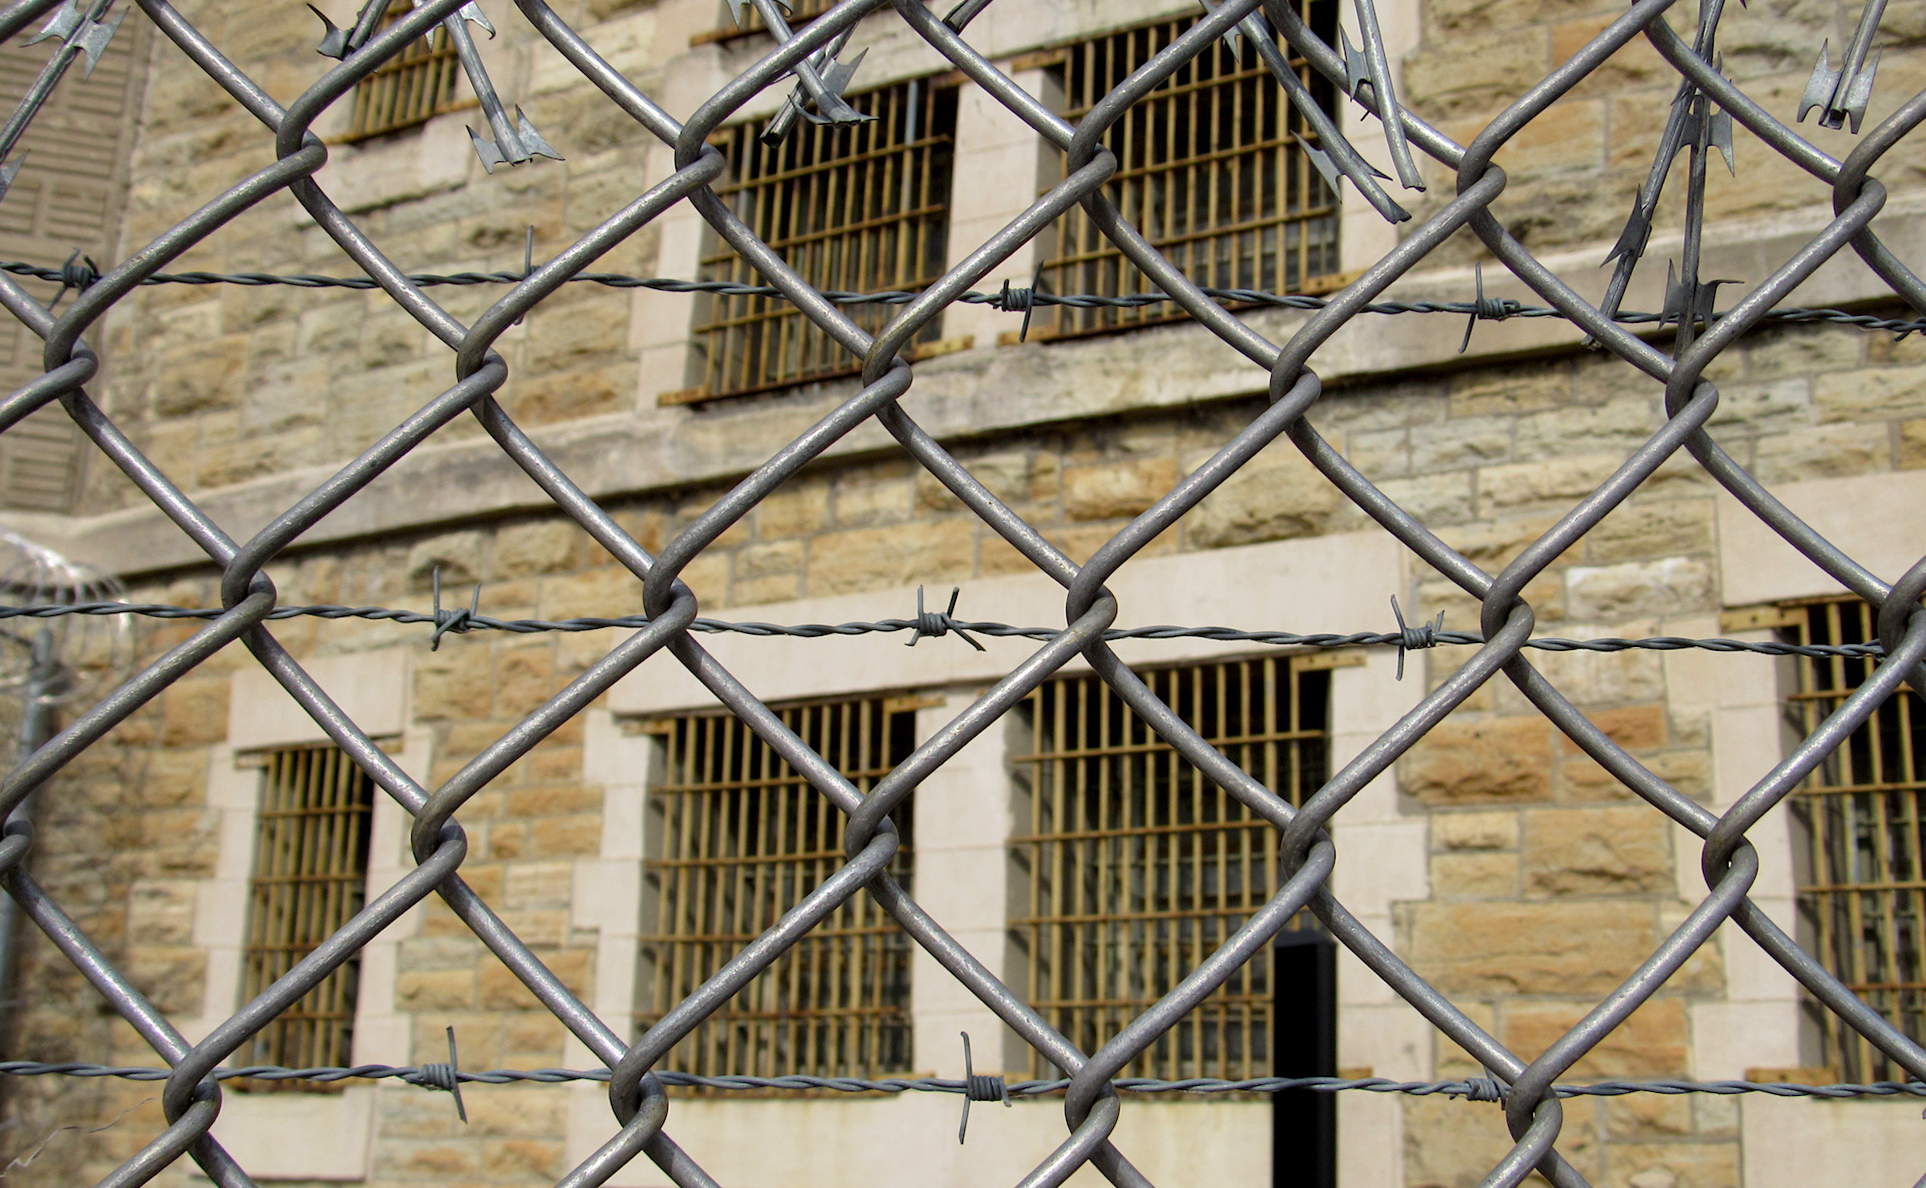 Sentencing the Old Iowa State Penitentiary